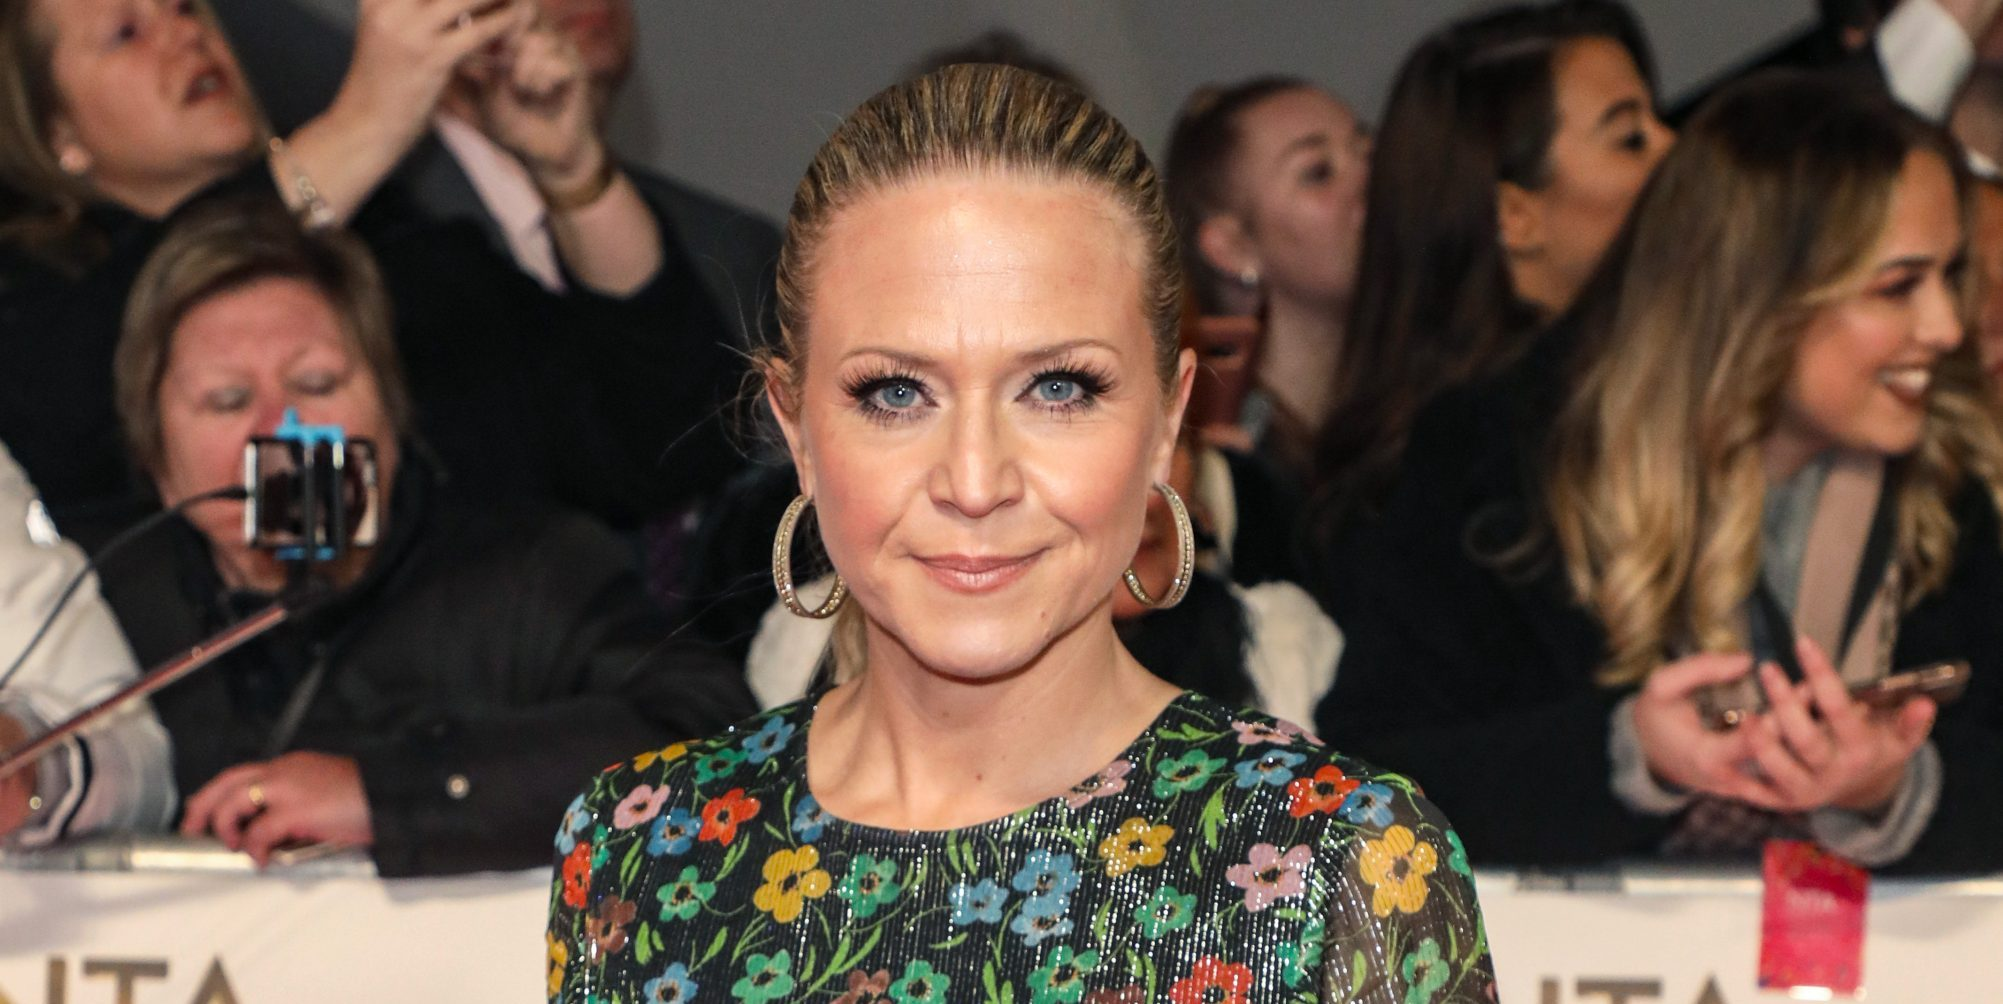 EastEnders' Kellie Bright wins TRIC Award for Best Soap Actor